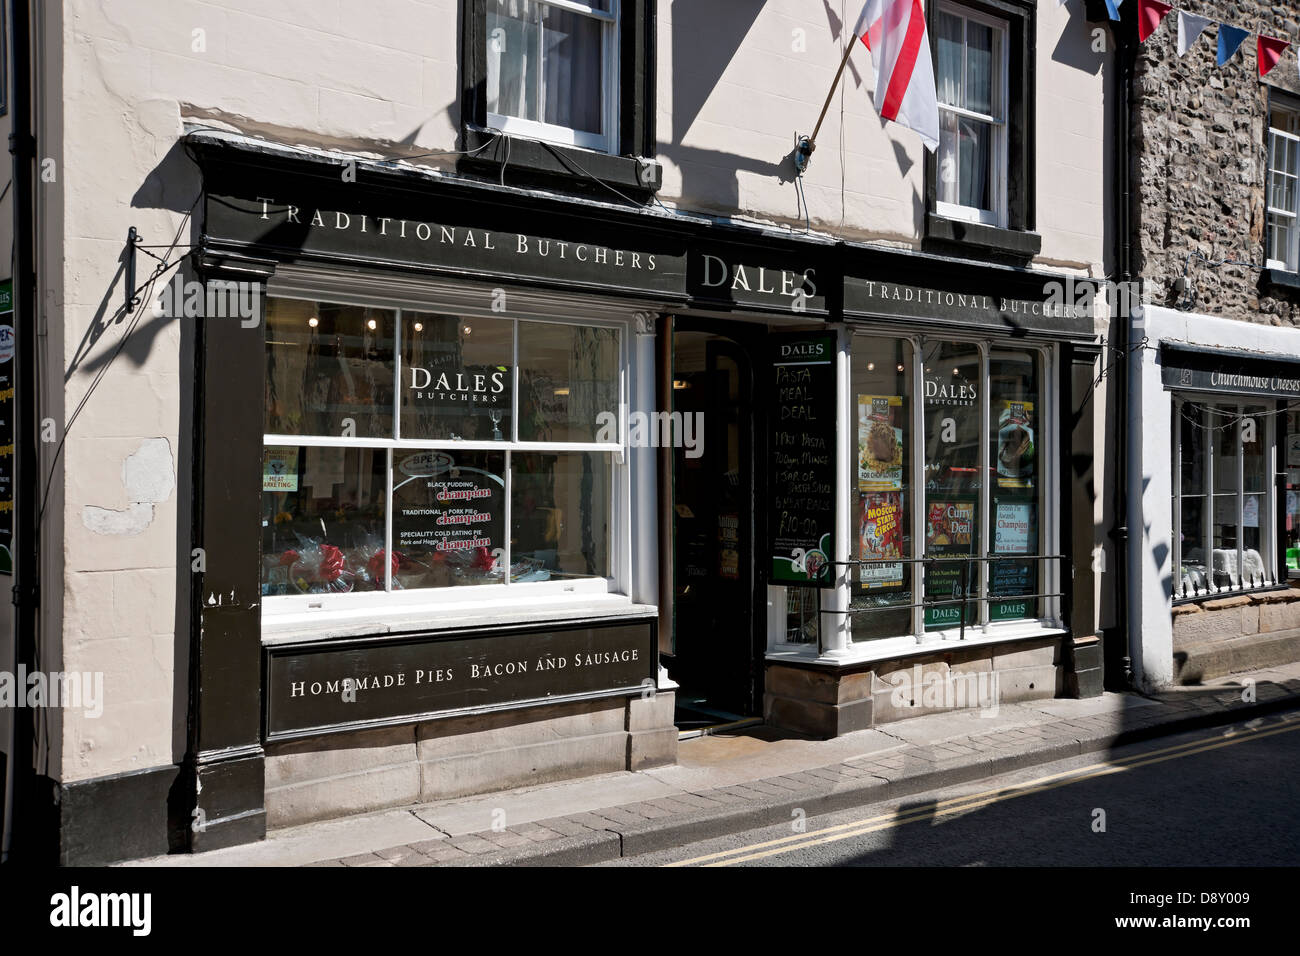 Traditional butchers shop Main Street Kirkby Lonsdale Cumbria England UK United Kingdom GB Great Britain - Stock Image